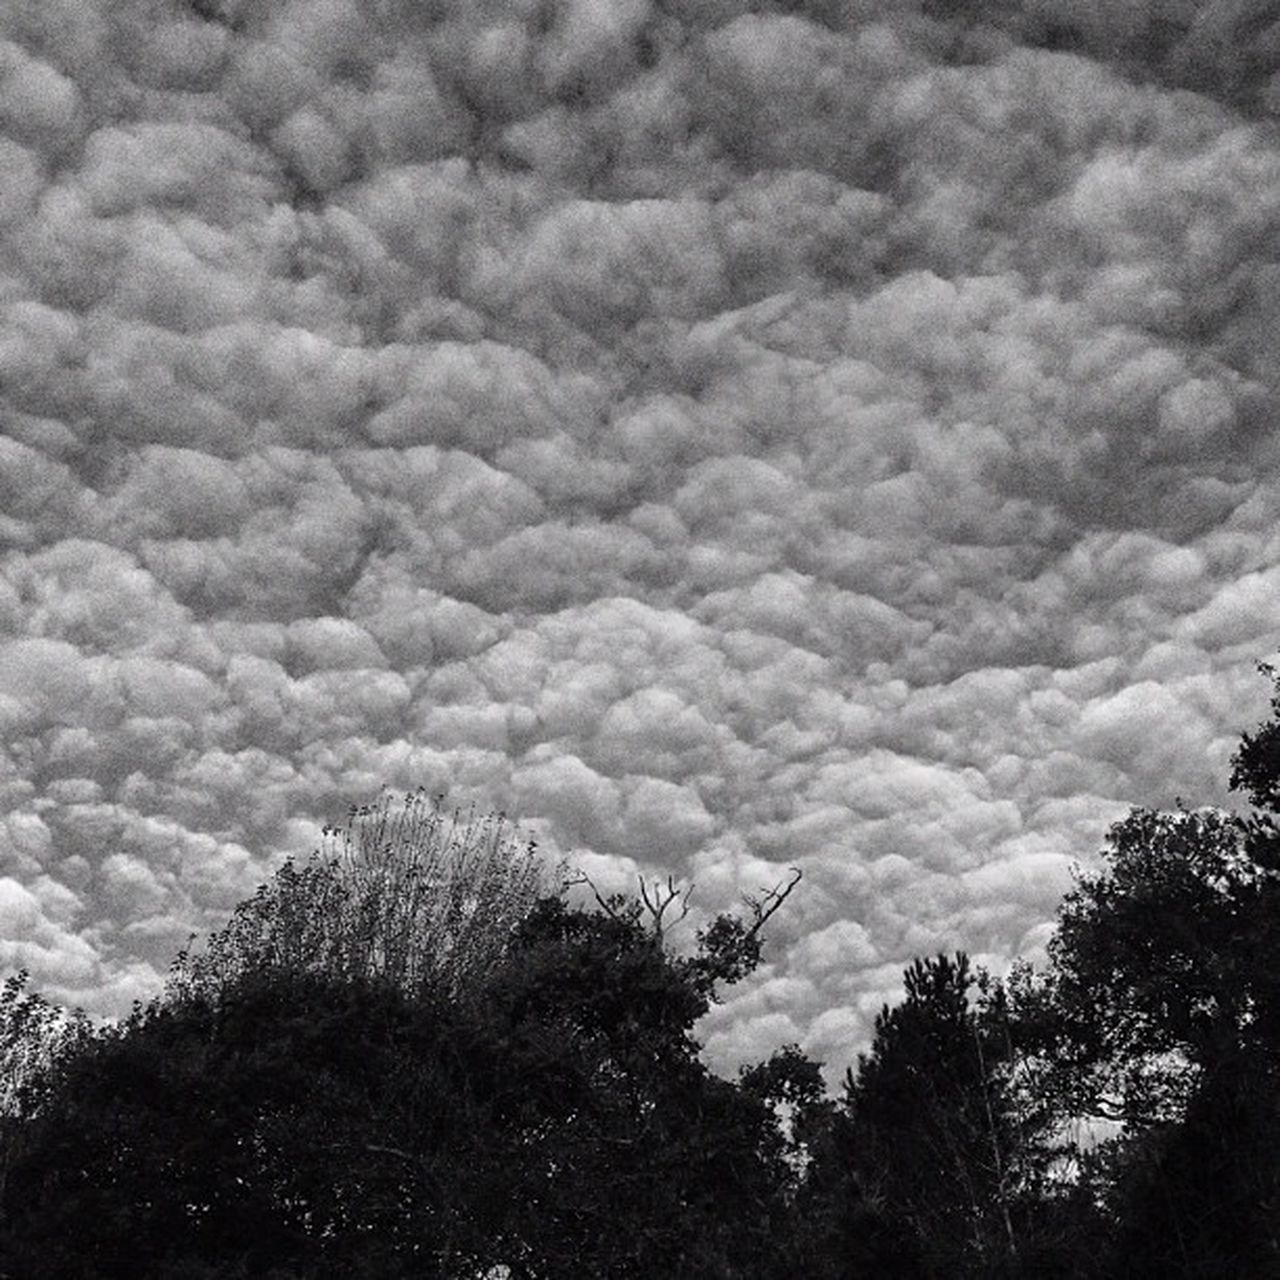 Clouds today.. #clouds #improvedimage #blackandwhite #sky Clouds Blackandwhite Sky Improvedimage